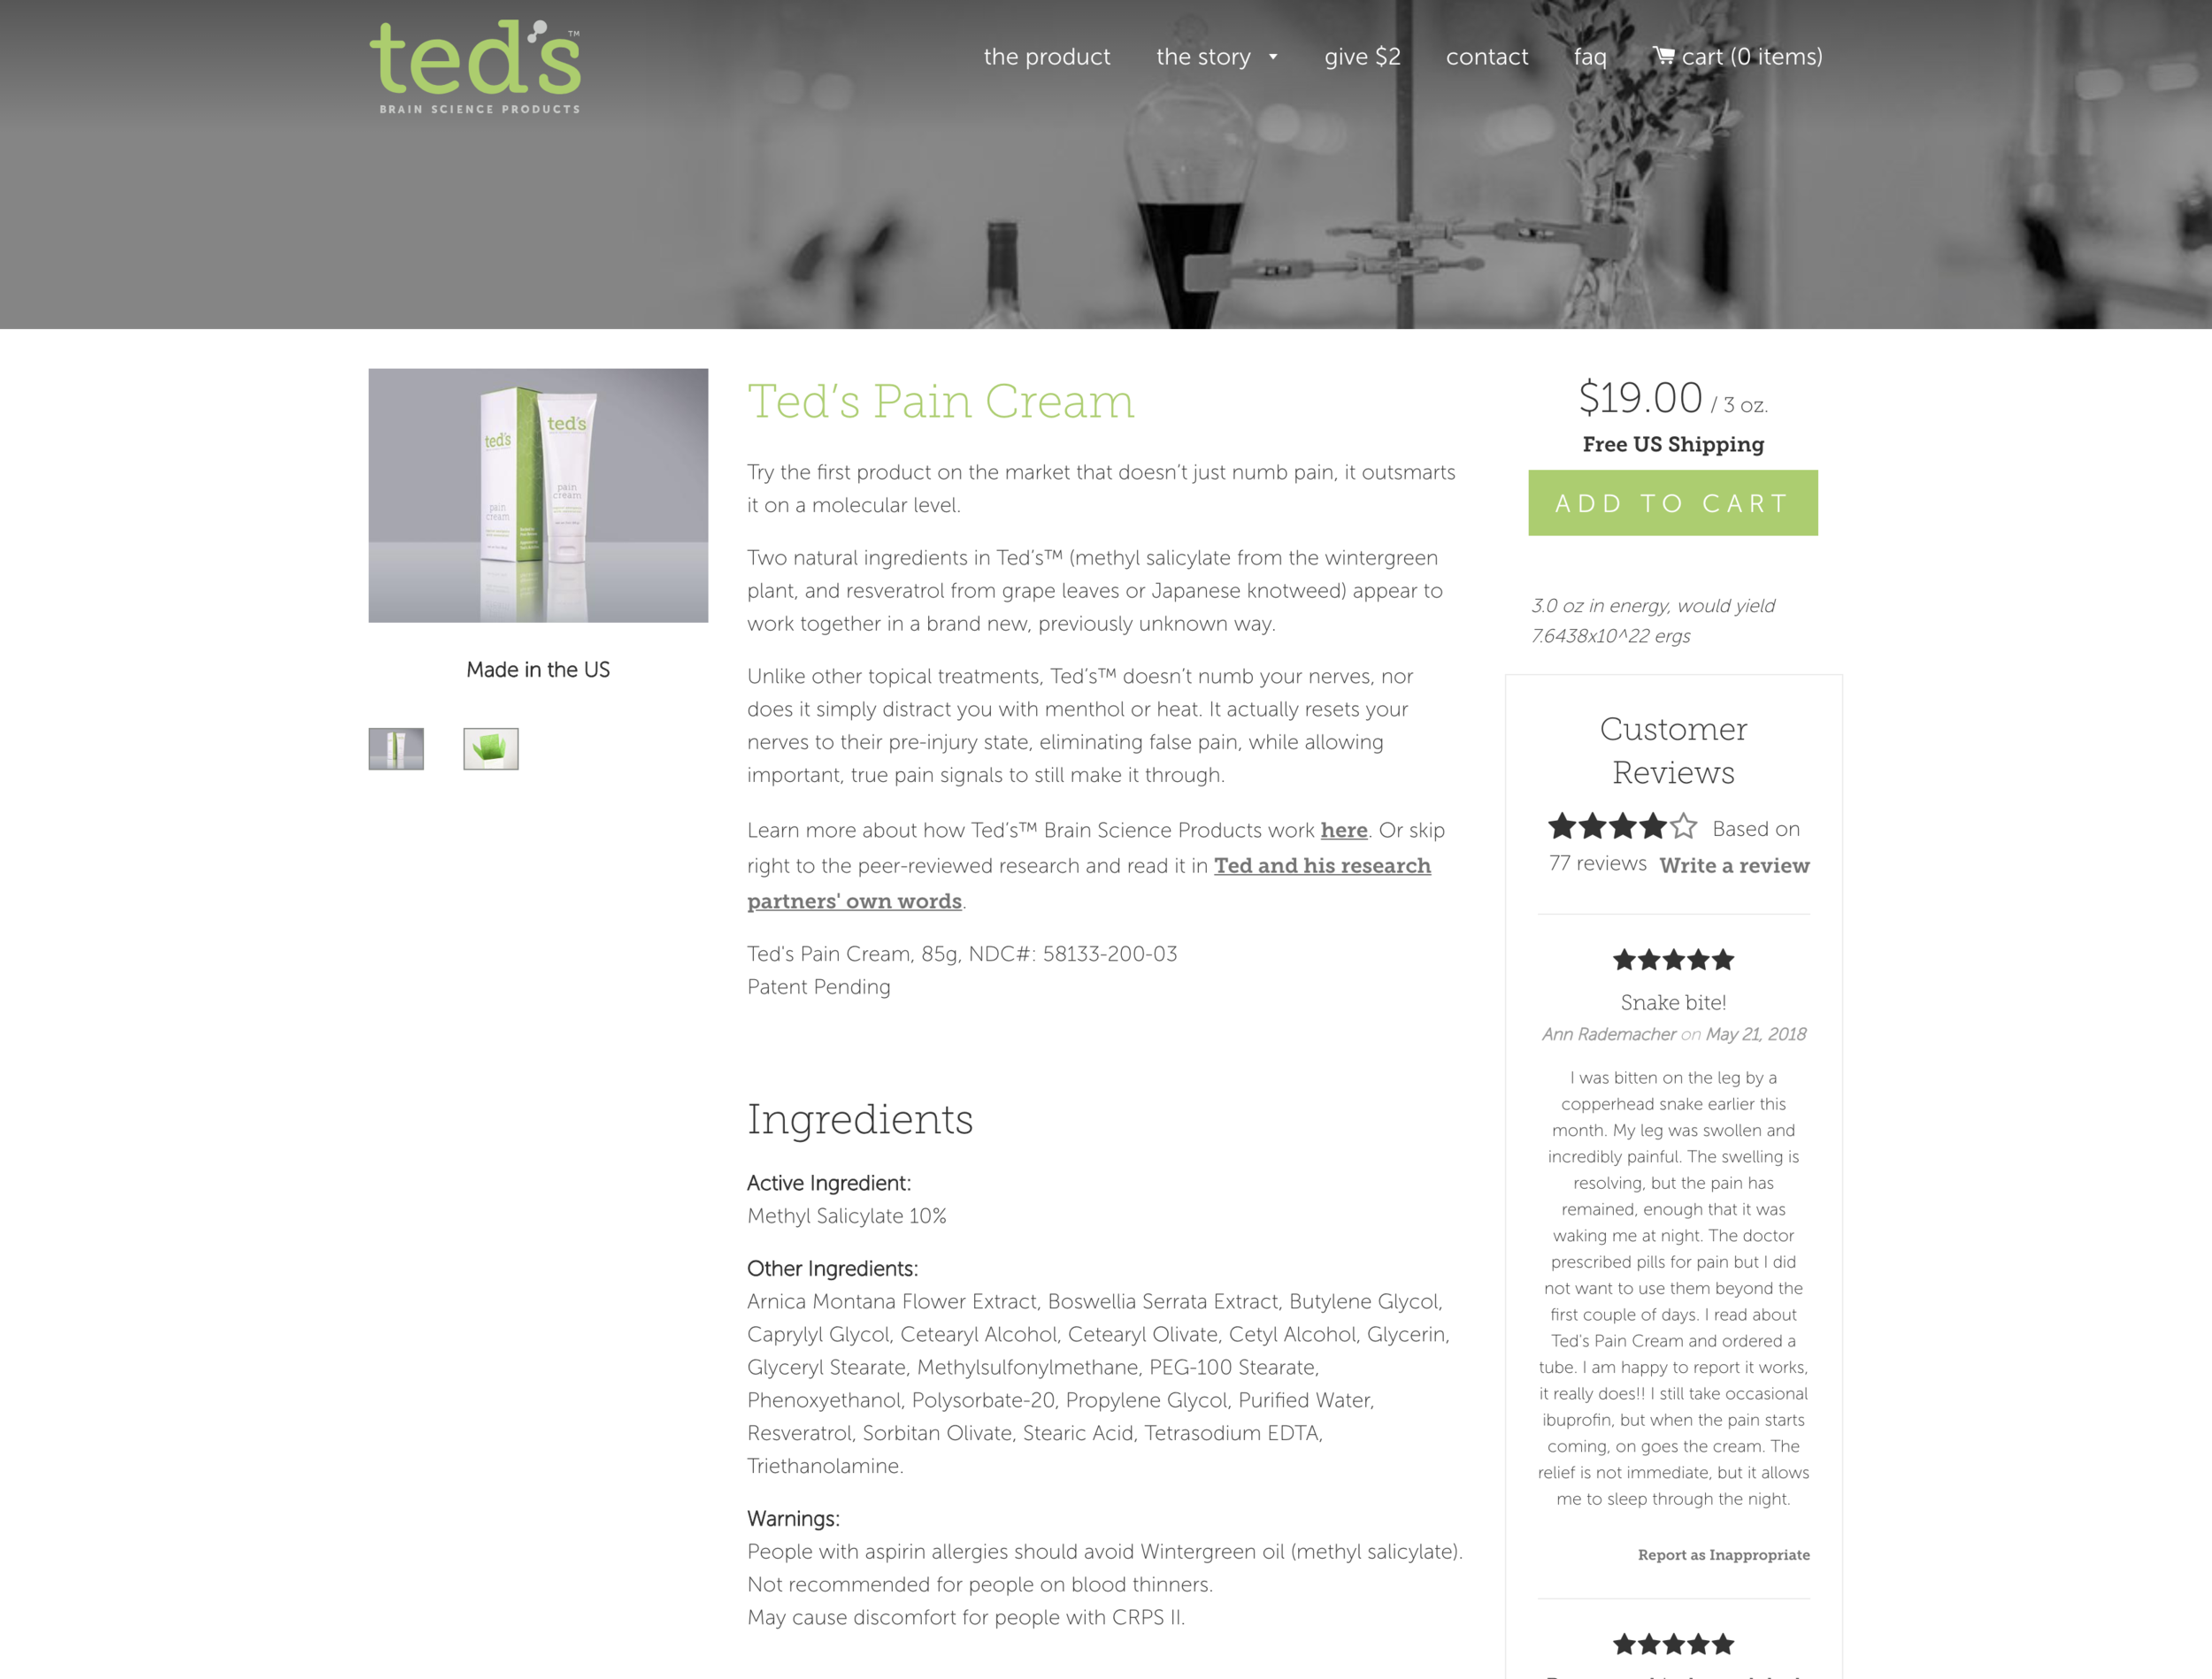 Control - This is the main site's control version of Ted's Pain Cream 'Product' page. This page does not contain a 'subscribe' option.Here are the results observed for the control page:Control: 1,318 visitors, 157 conversions (12.1% eCommerce Conversion Rate)